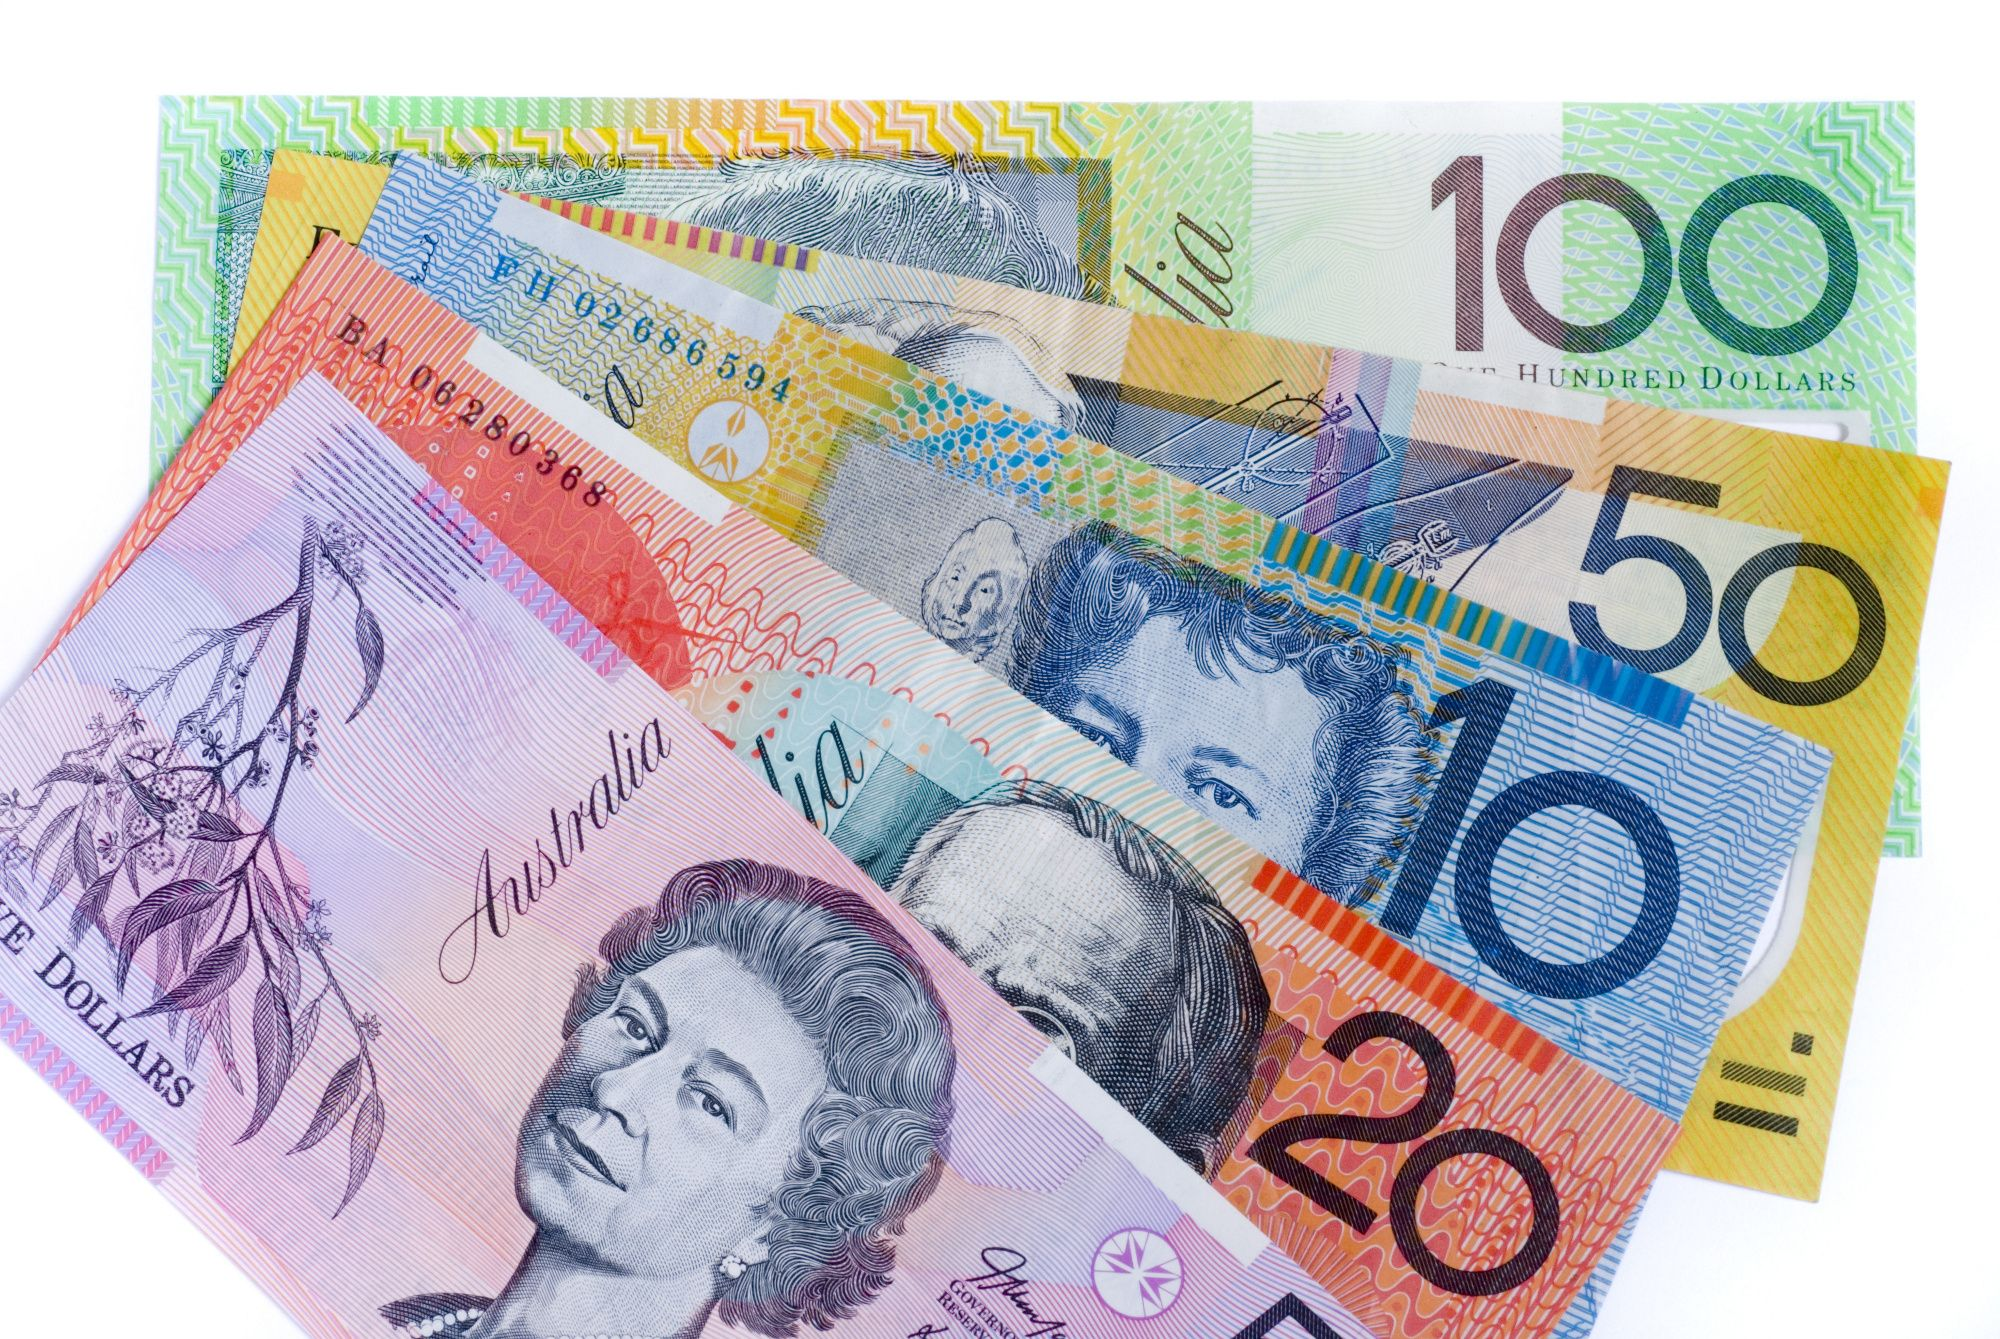 Daily Australian Dollar Aussie Aud Ysis News And Forecasts Across All Currencies Understand What Determines Levels